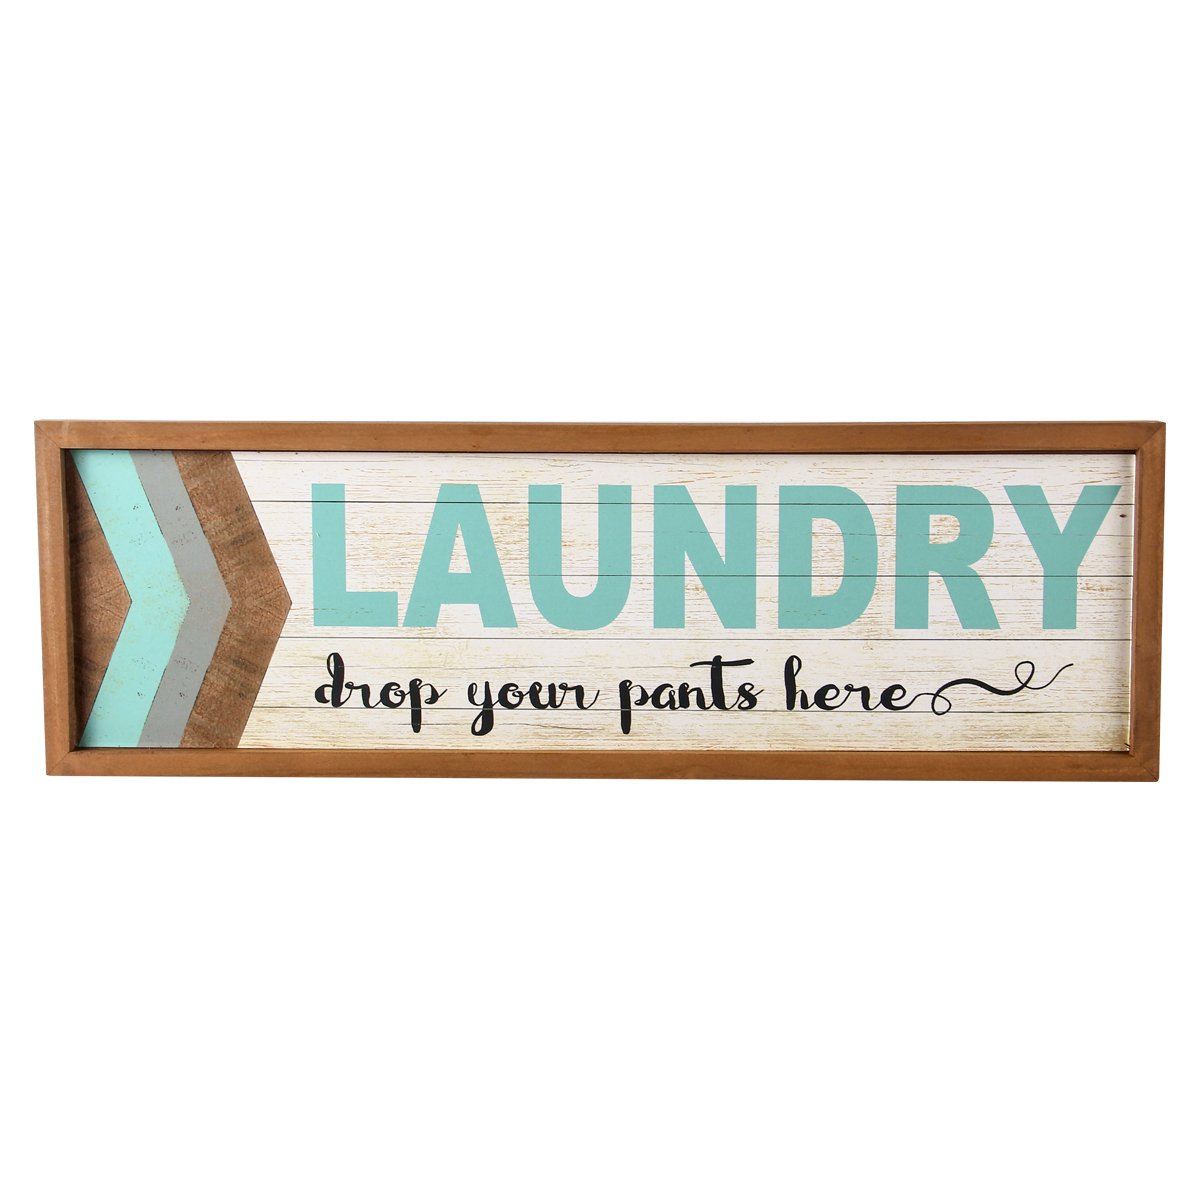 NIKKY HOME Decorative Wall Plaque Sign for Laundry Room 15.37 Inches by 5.12 Inches White